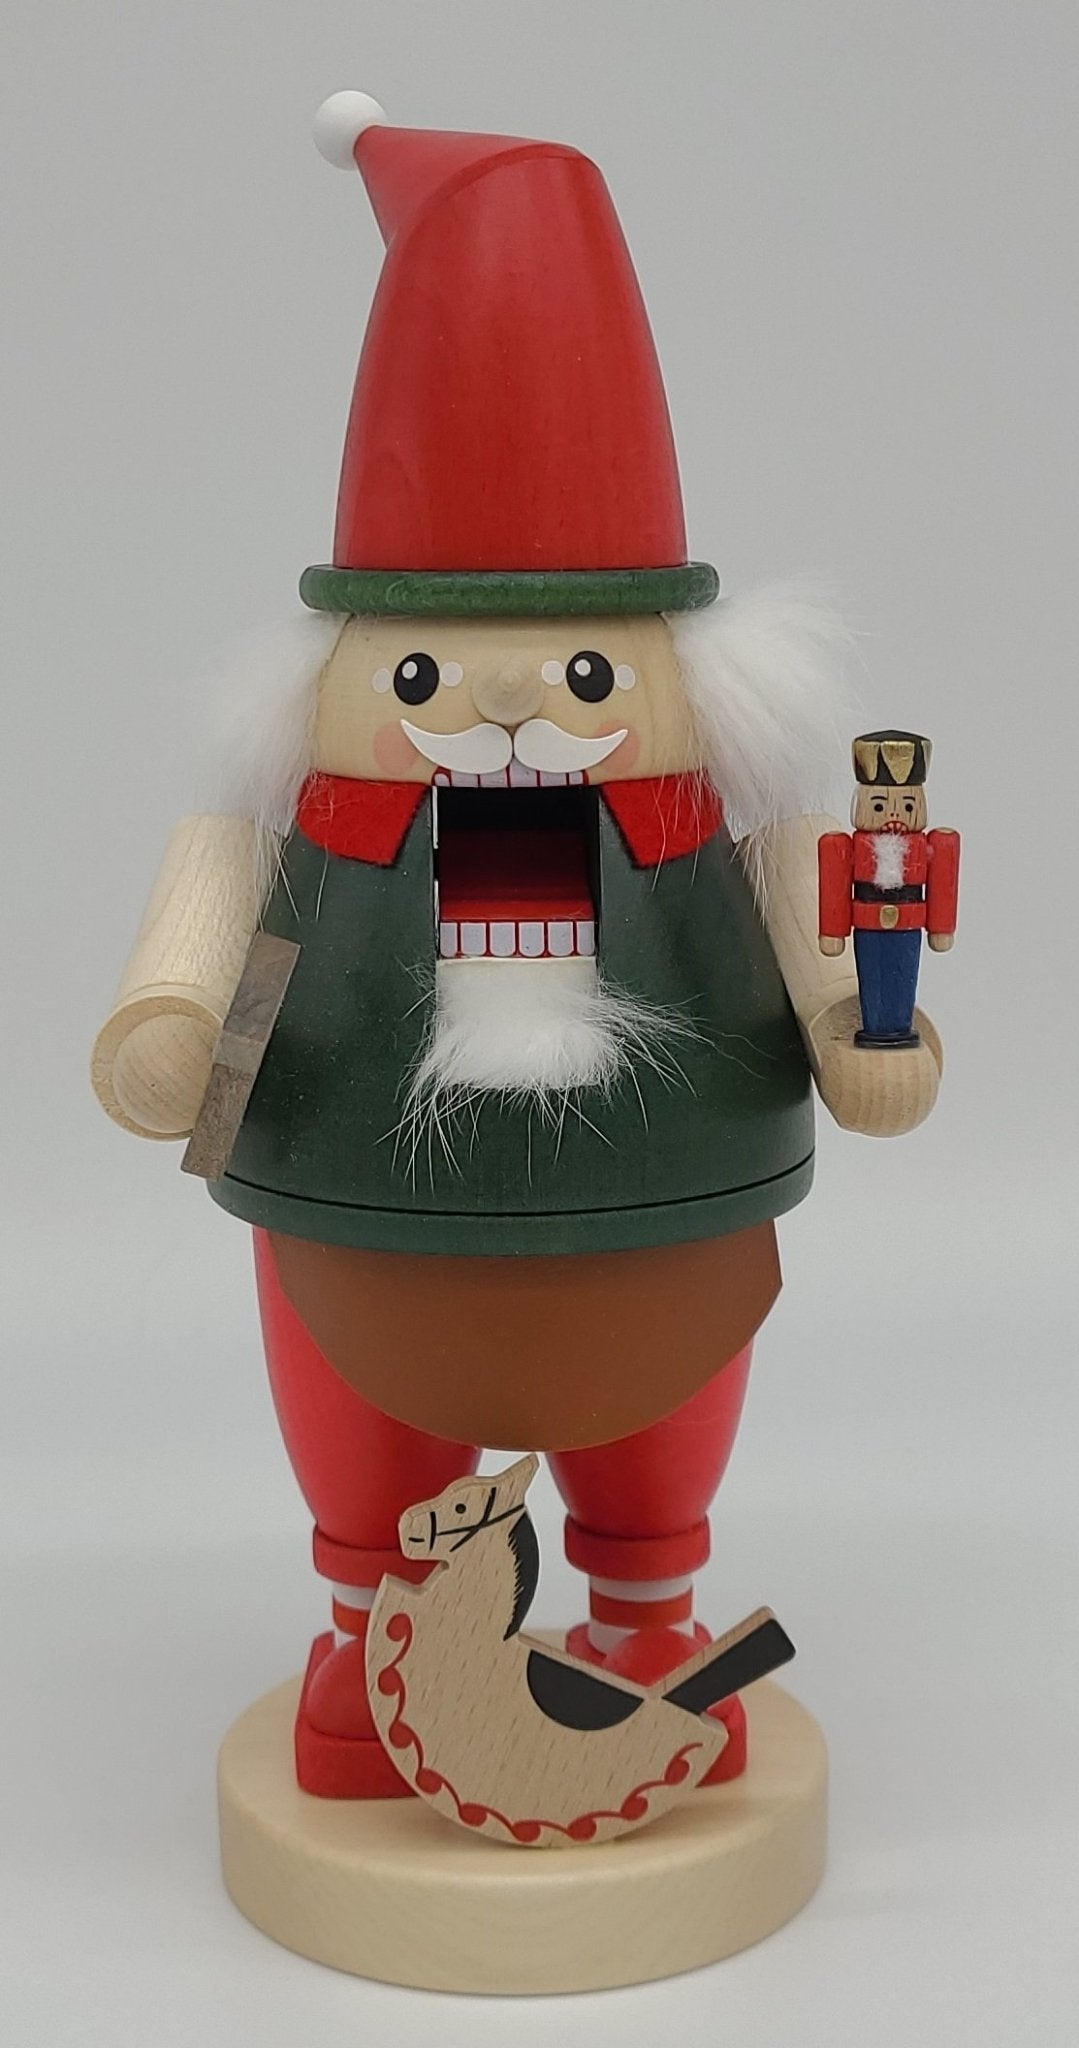 Handmade German 9 inch Nutcracker dwarf with nutcracker - Schmidt Christmas Market Christmas Decoration